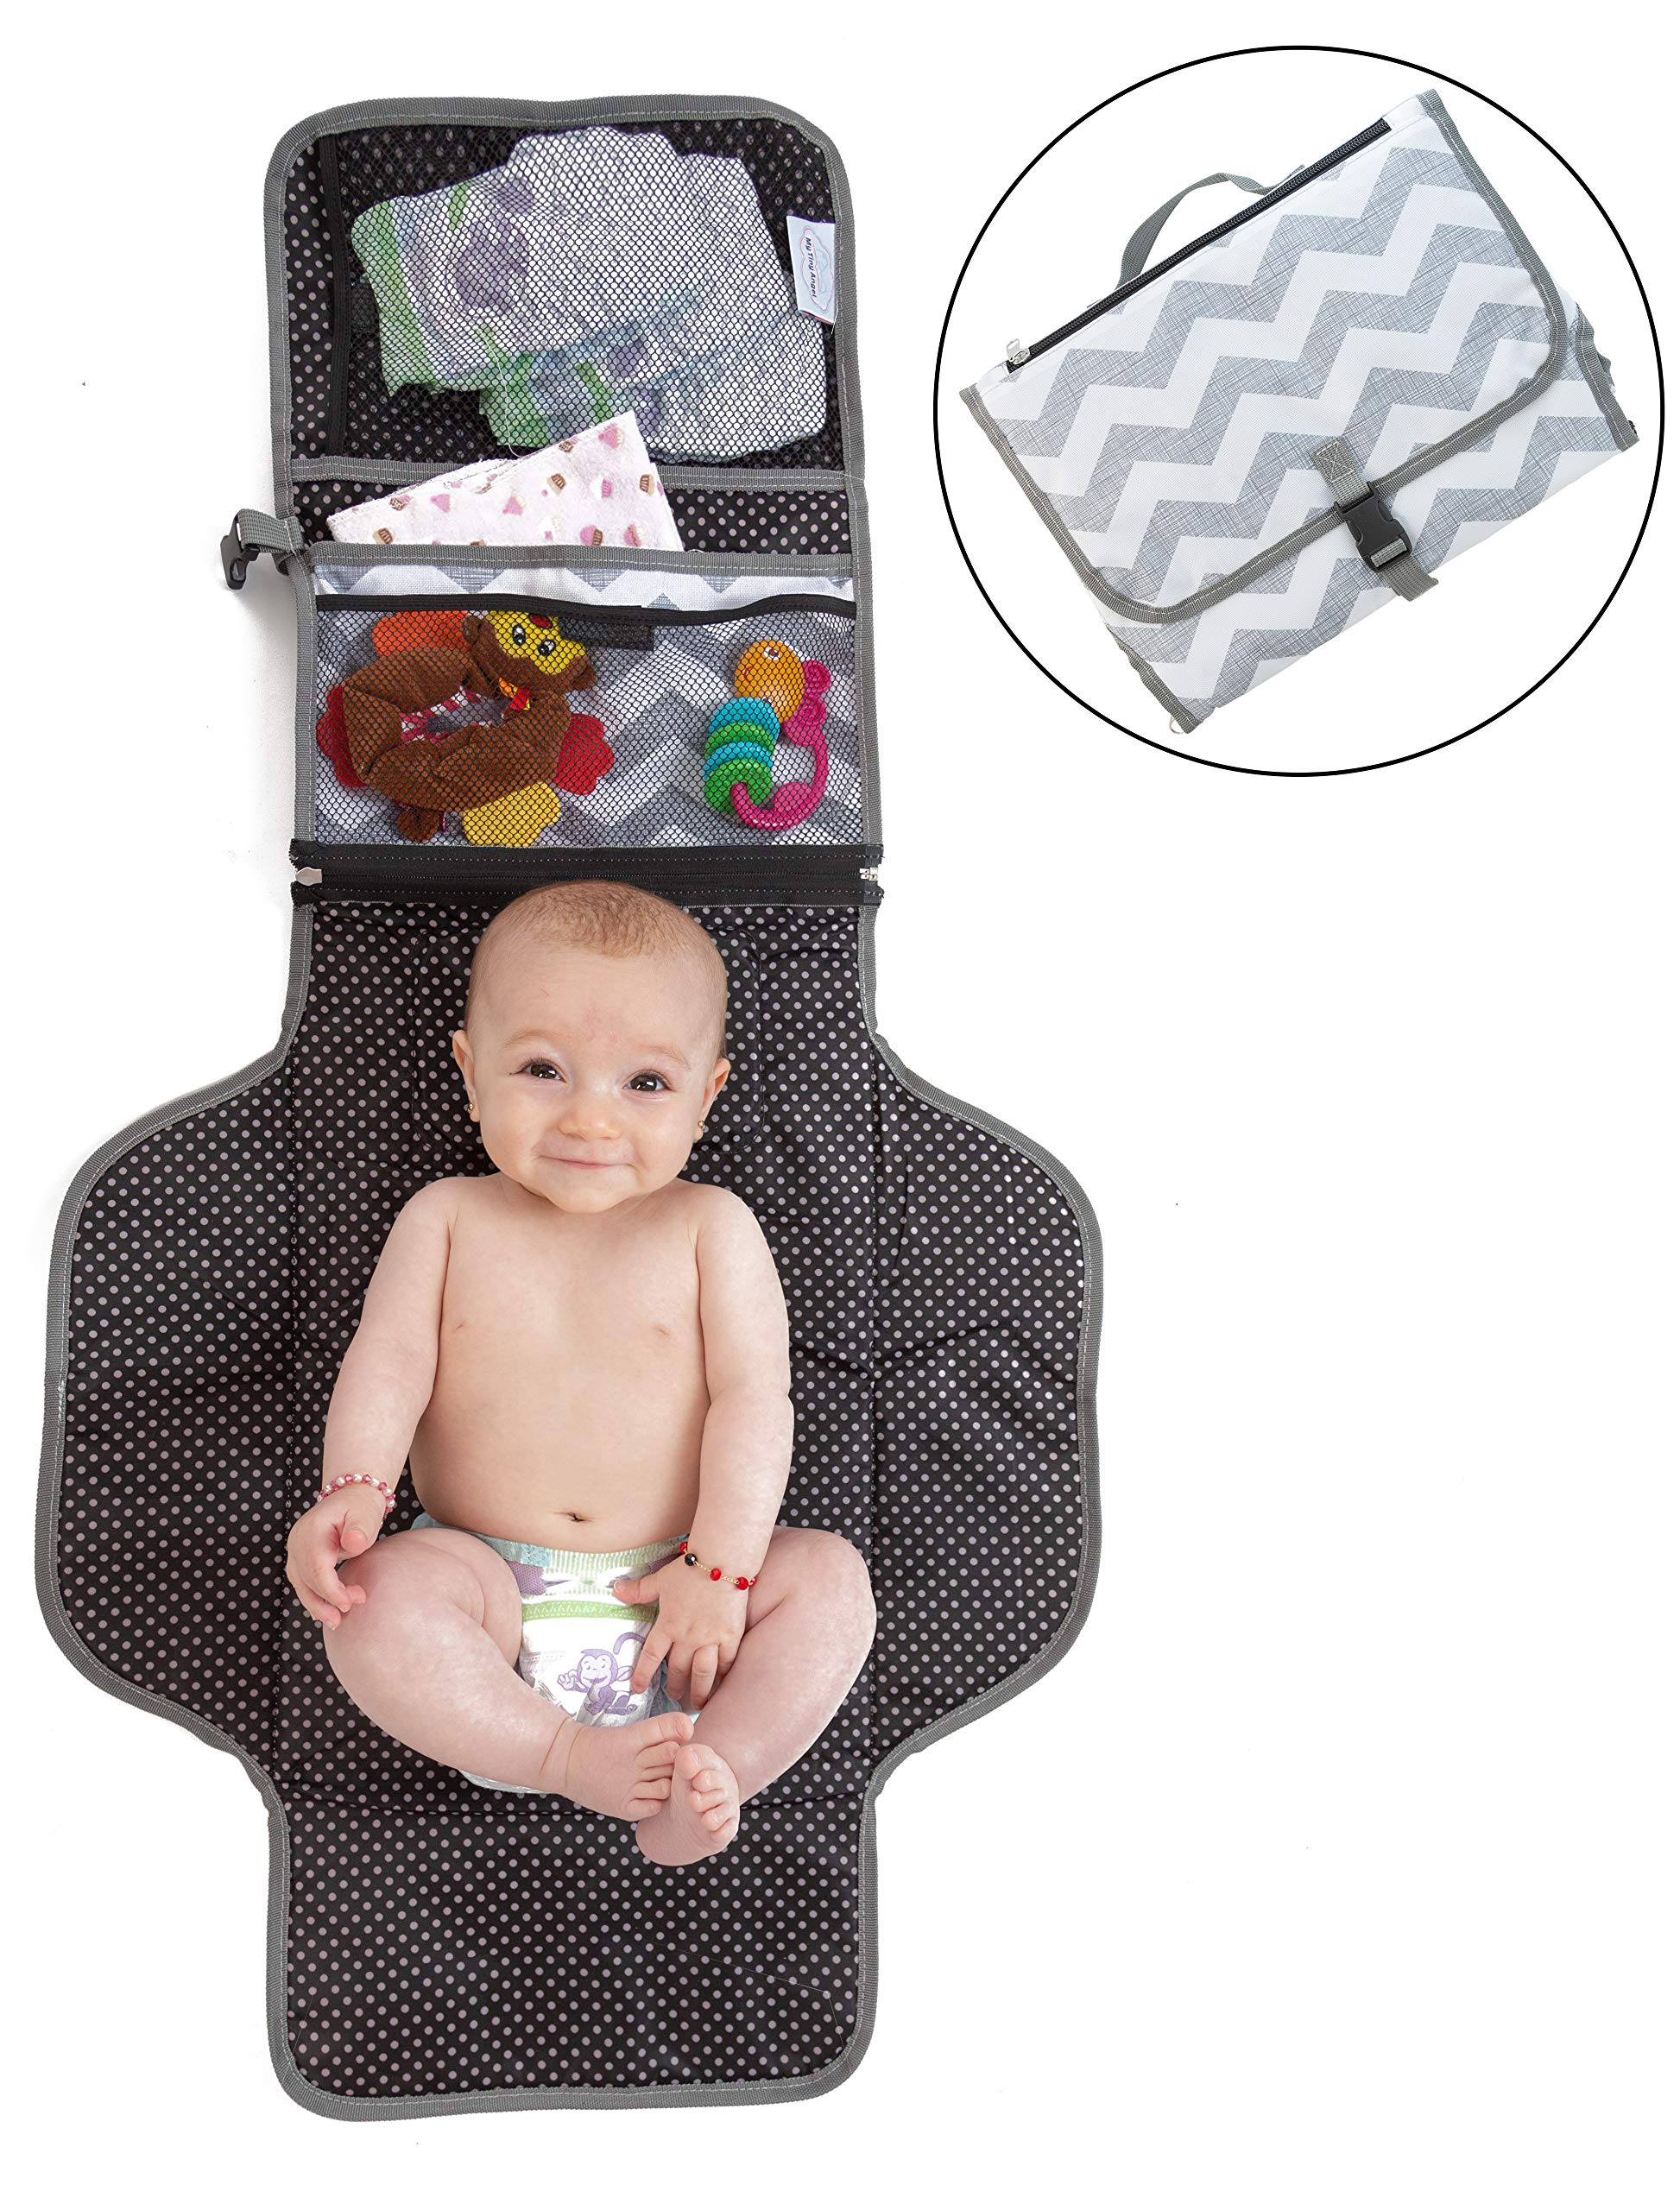 Portable Changing Pad - Padded Baby Changing Station, Portable, Foldable, Detachable - Zippered and Mesh Pockets - Ideal For Travel - Easy to Clean Waterproof Baby Diaper Mat, Perfect Baby Shower Gift by My Tiny Angel